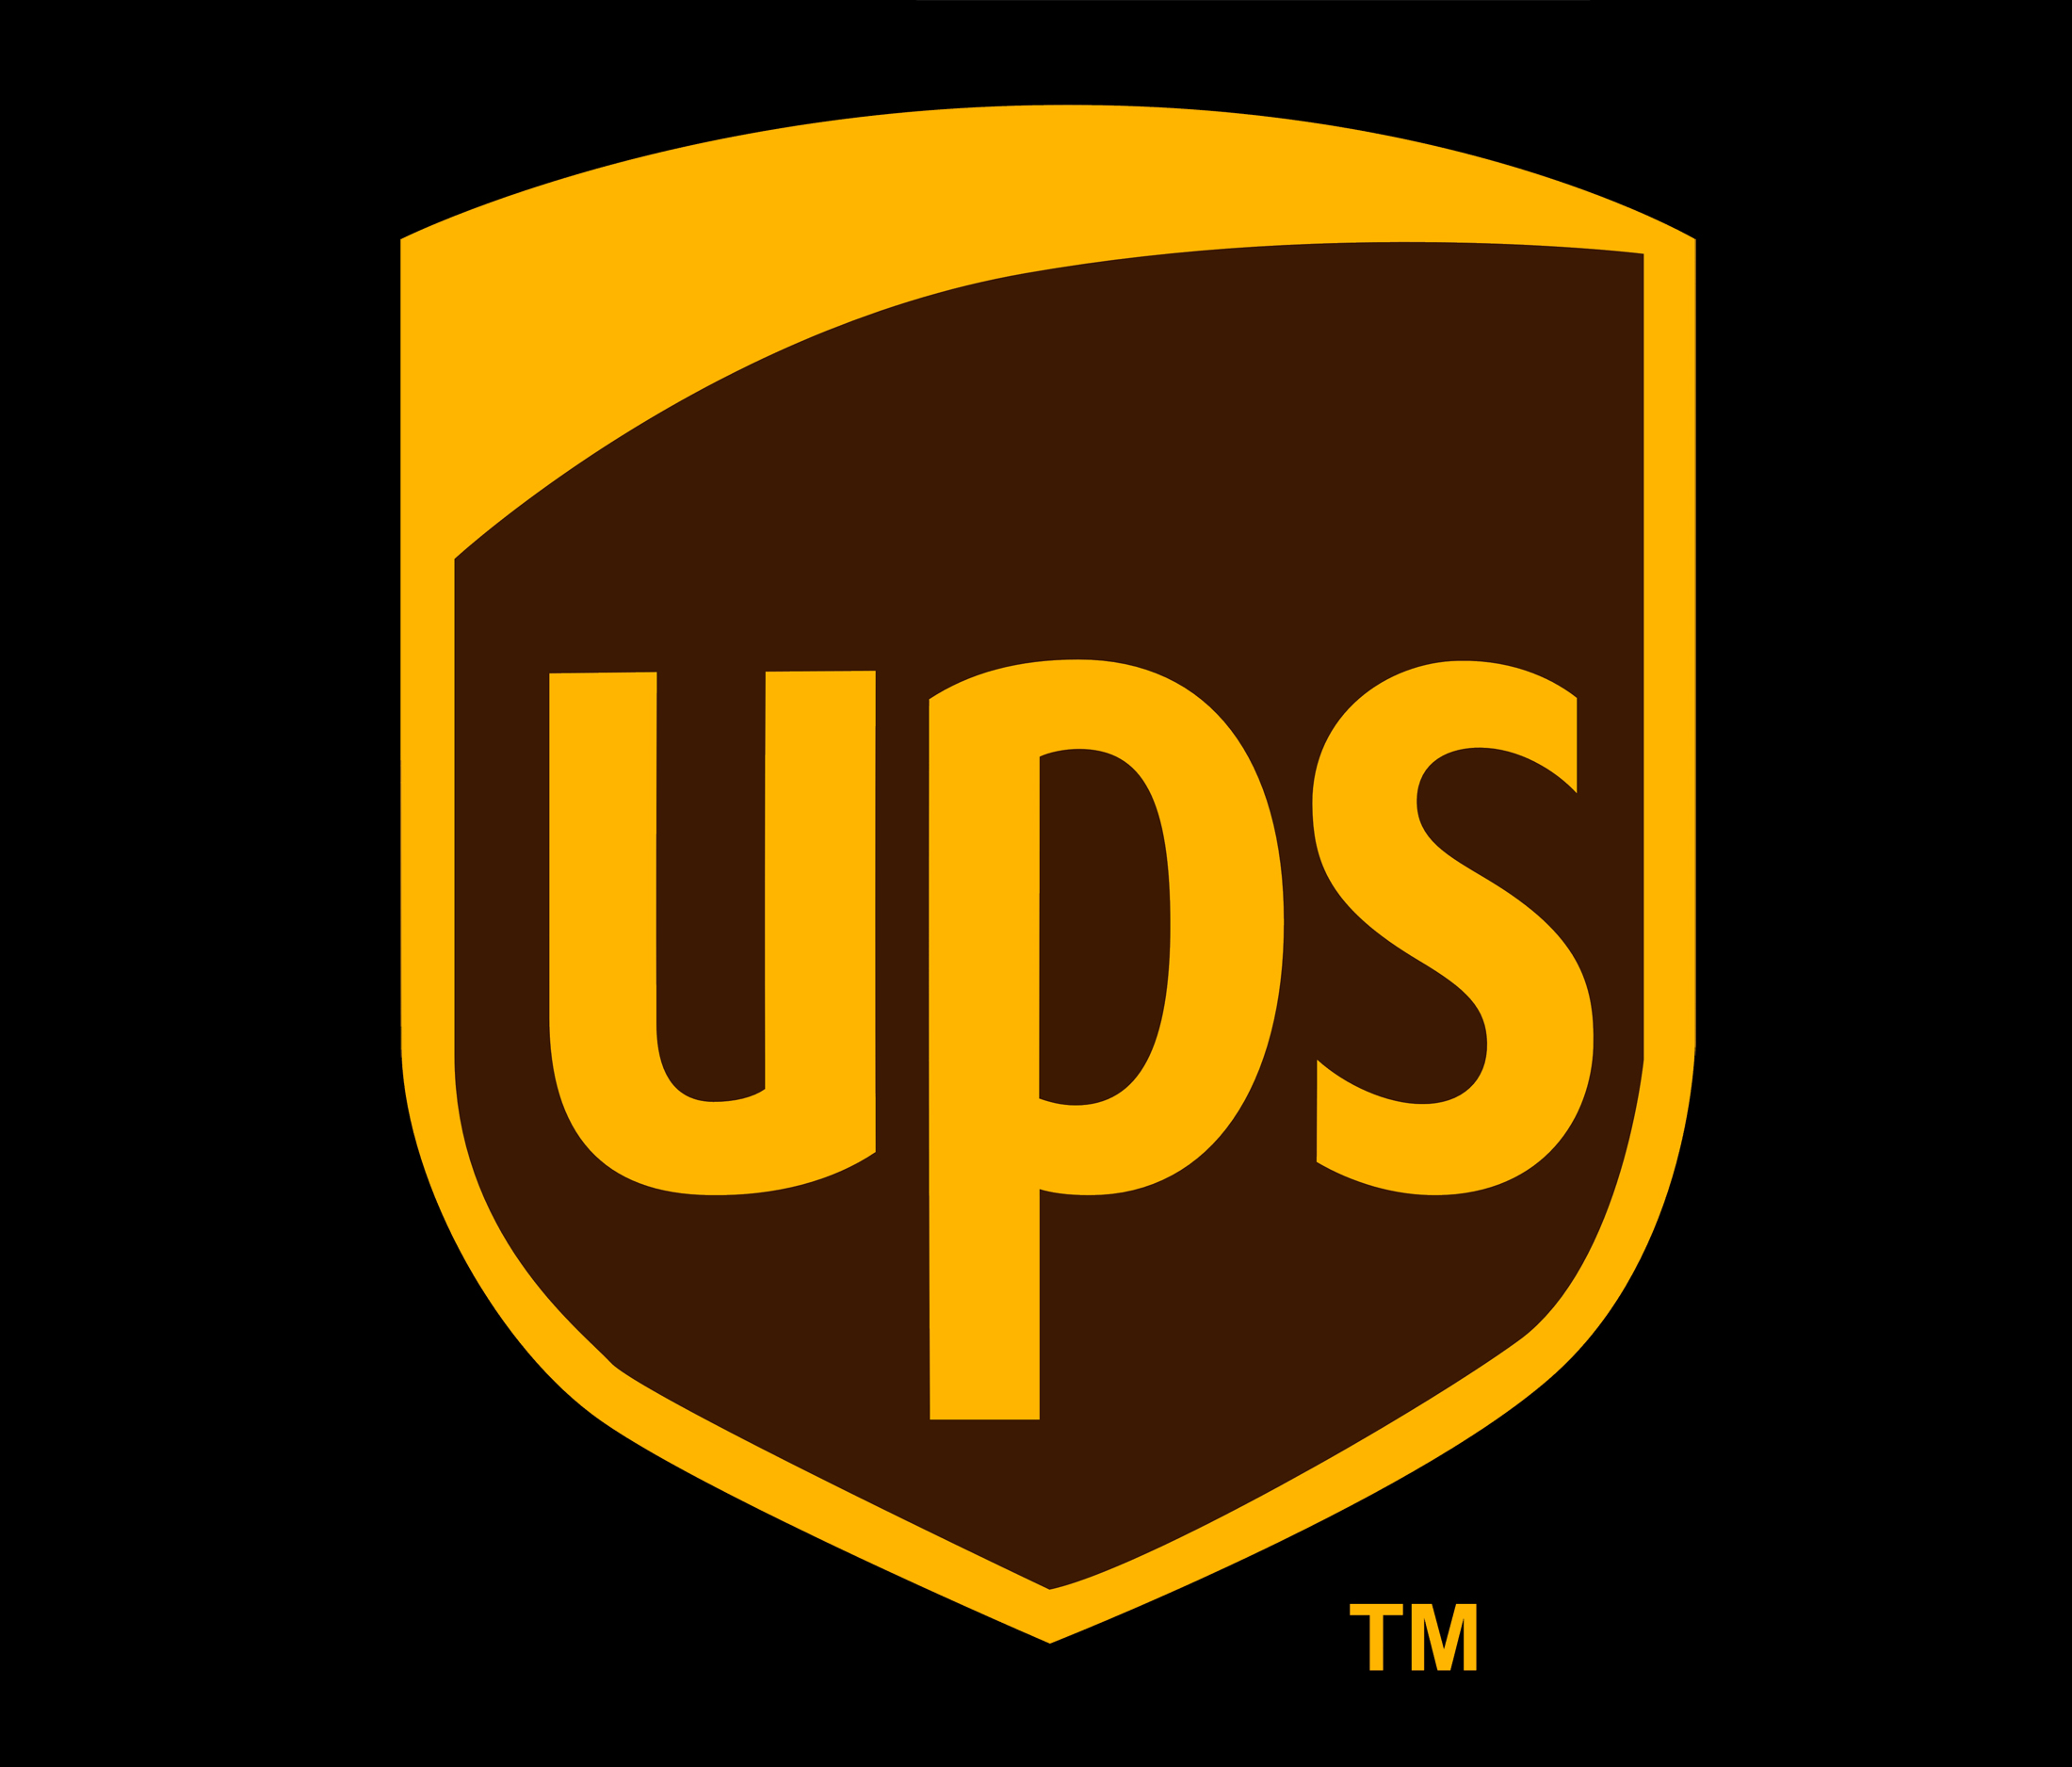 Ups Logo Ups Symbol Meaning History And Evolution